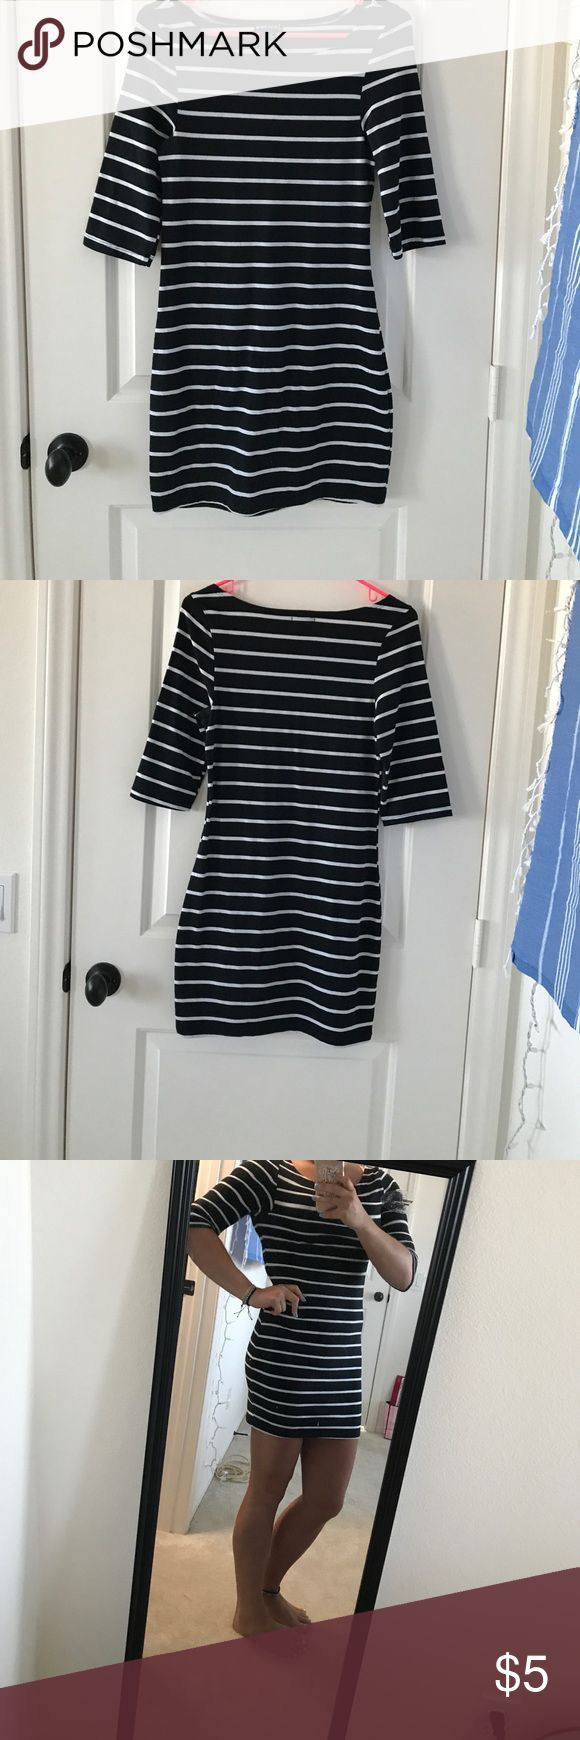 Wet seal black and white stripe dress Body con type dress. From wet seal. Black and white stripes. 3/4 sleeves. Only worn once. Wet Seal Dresses Midi